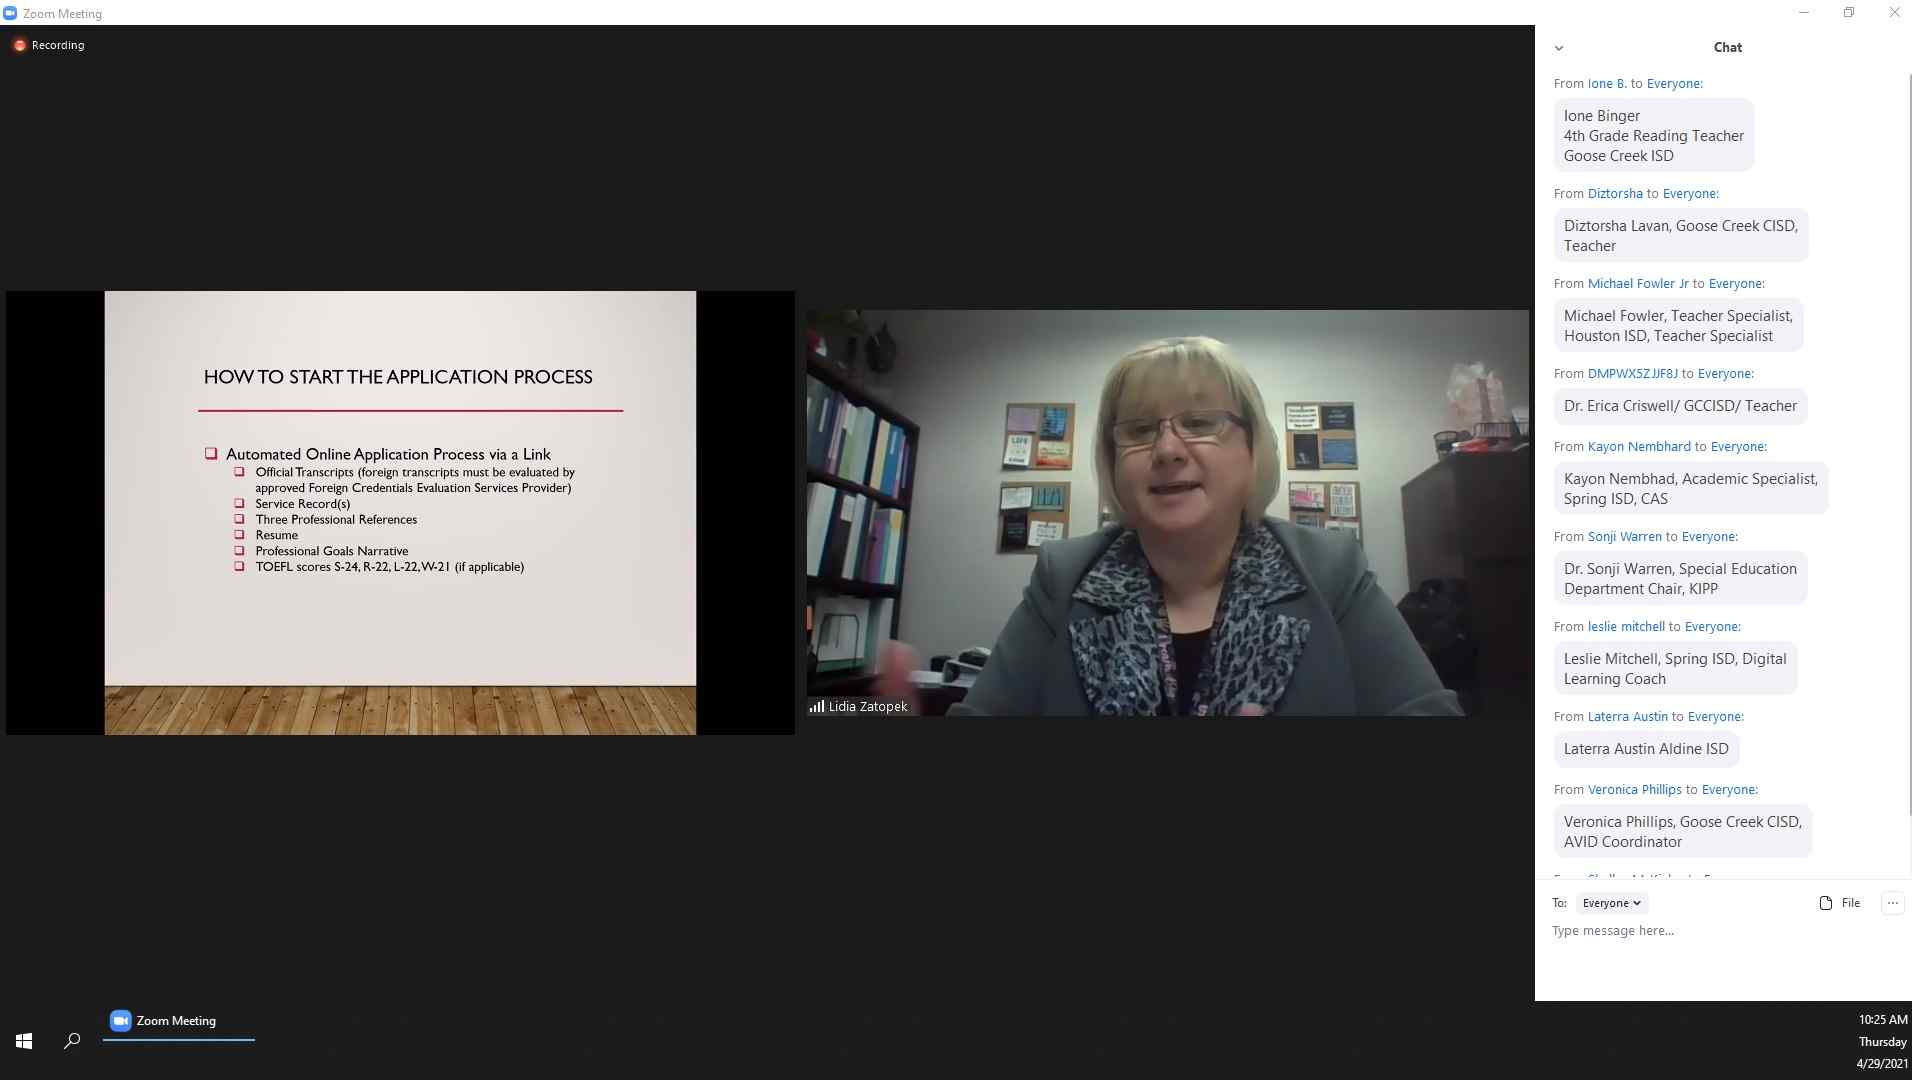 Image of Lidia Zatopek leading an informational virtual conference.